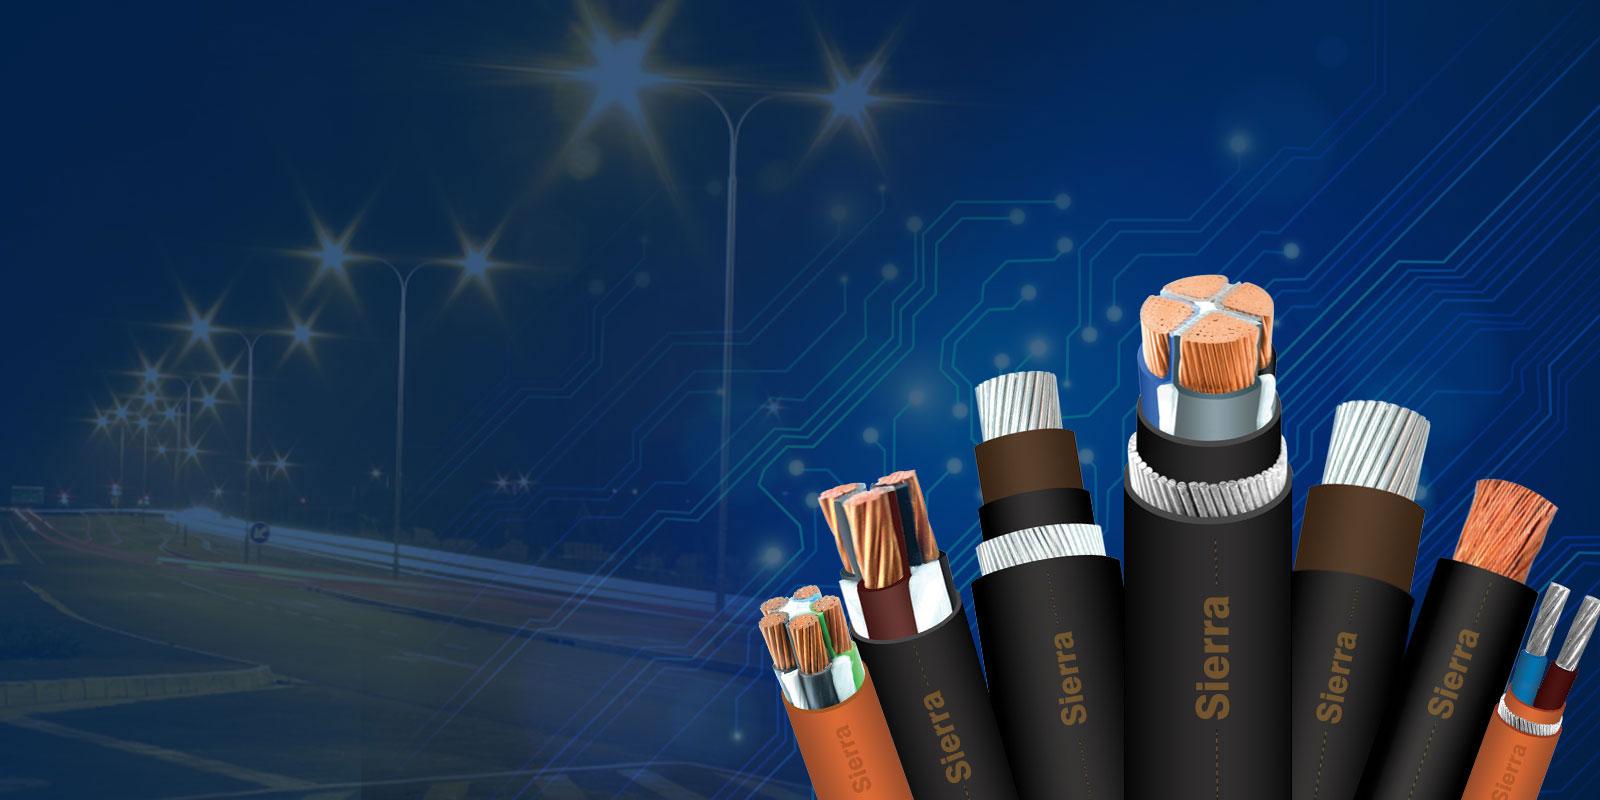 Sierra Cables Truly Independent Sri Lankan Manufacture Wiring Workmanship Standards A Name For